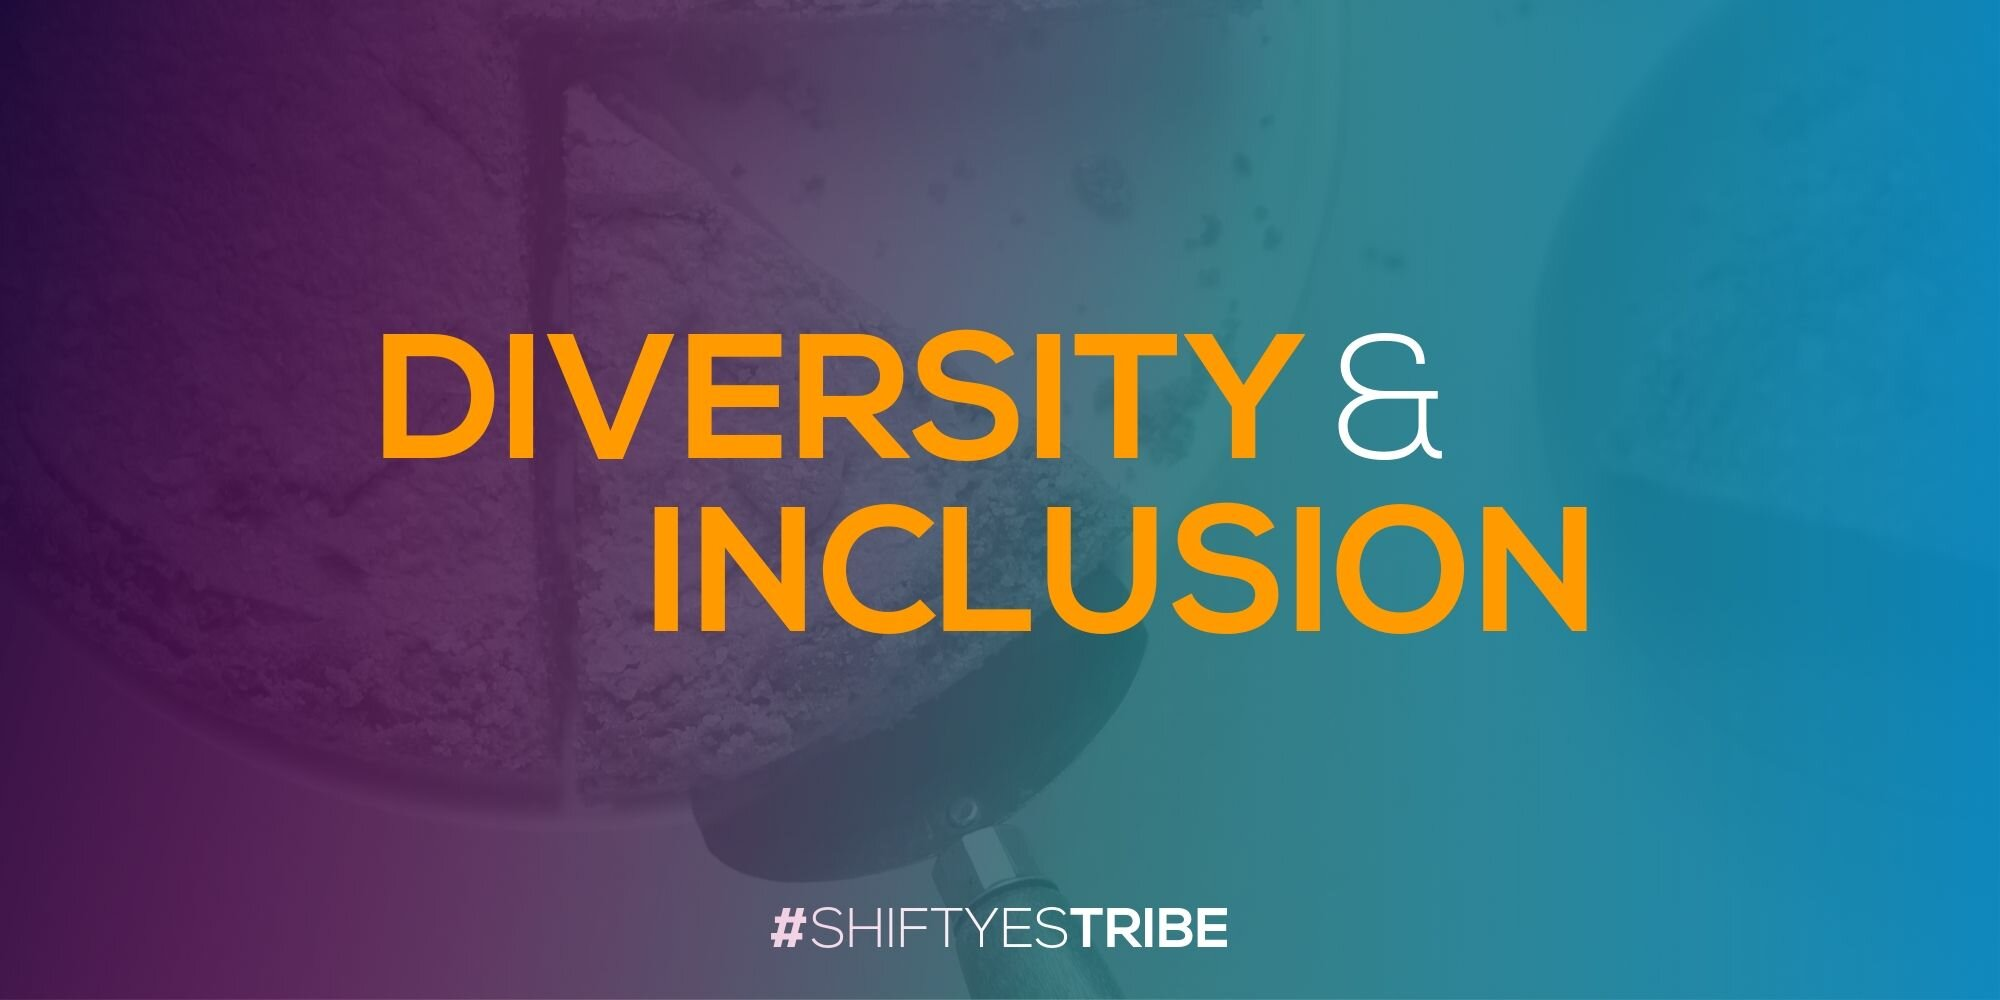 Galen Emanuele #shiftyestribe Shift Yes Tribe diversity inclusion august 2019.jpg